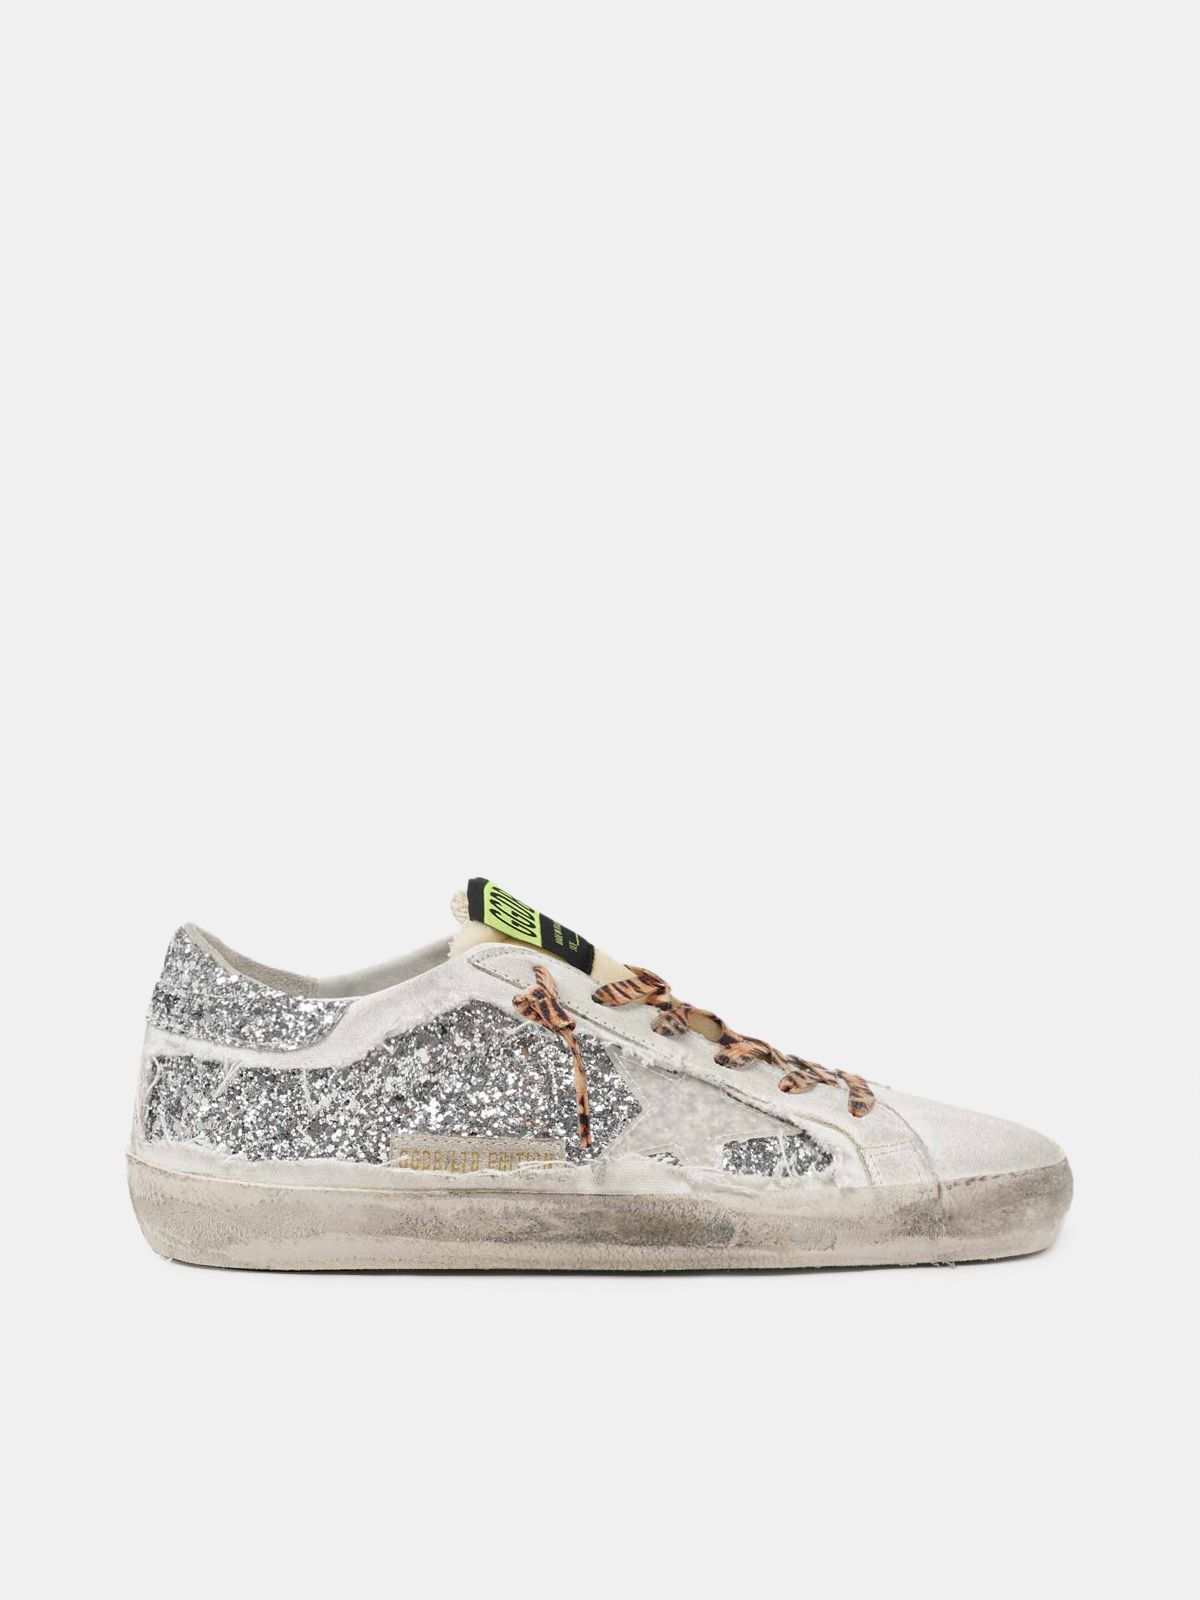 Golden Goose - Men's Limited Edition LAB Super-Star sneakers with glitter and leopard-print laces in